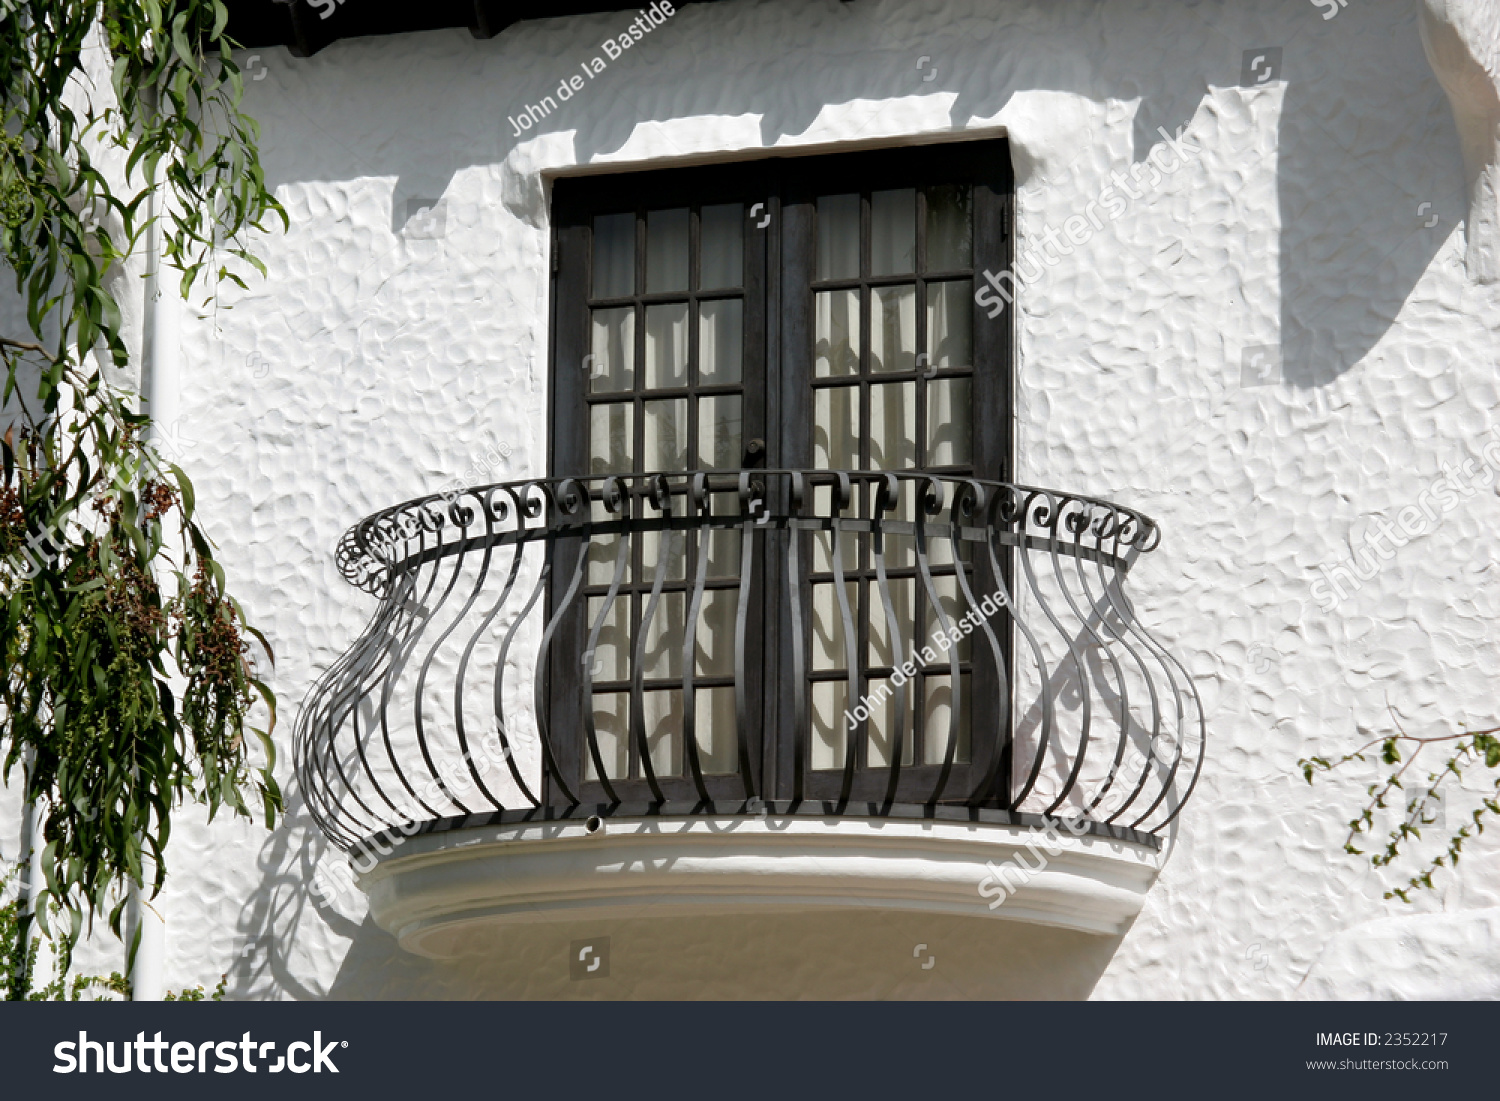 Spanish style balcony stock photo 2352217 shutterstock for Balcony in spanish